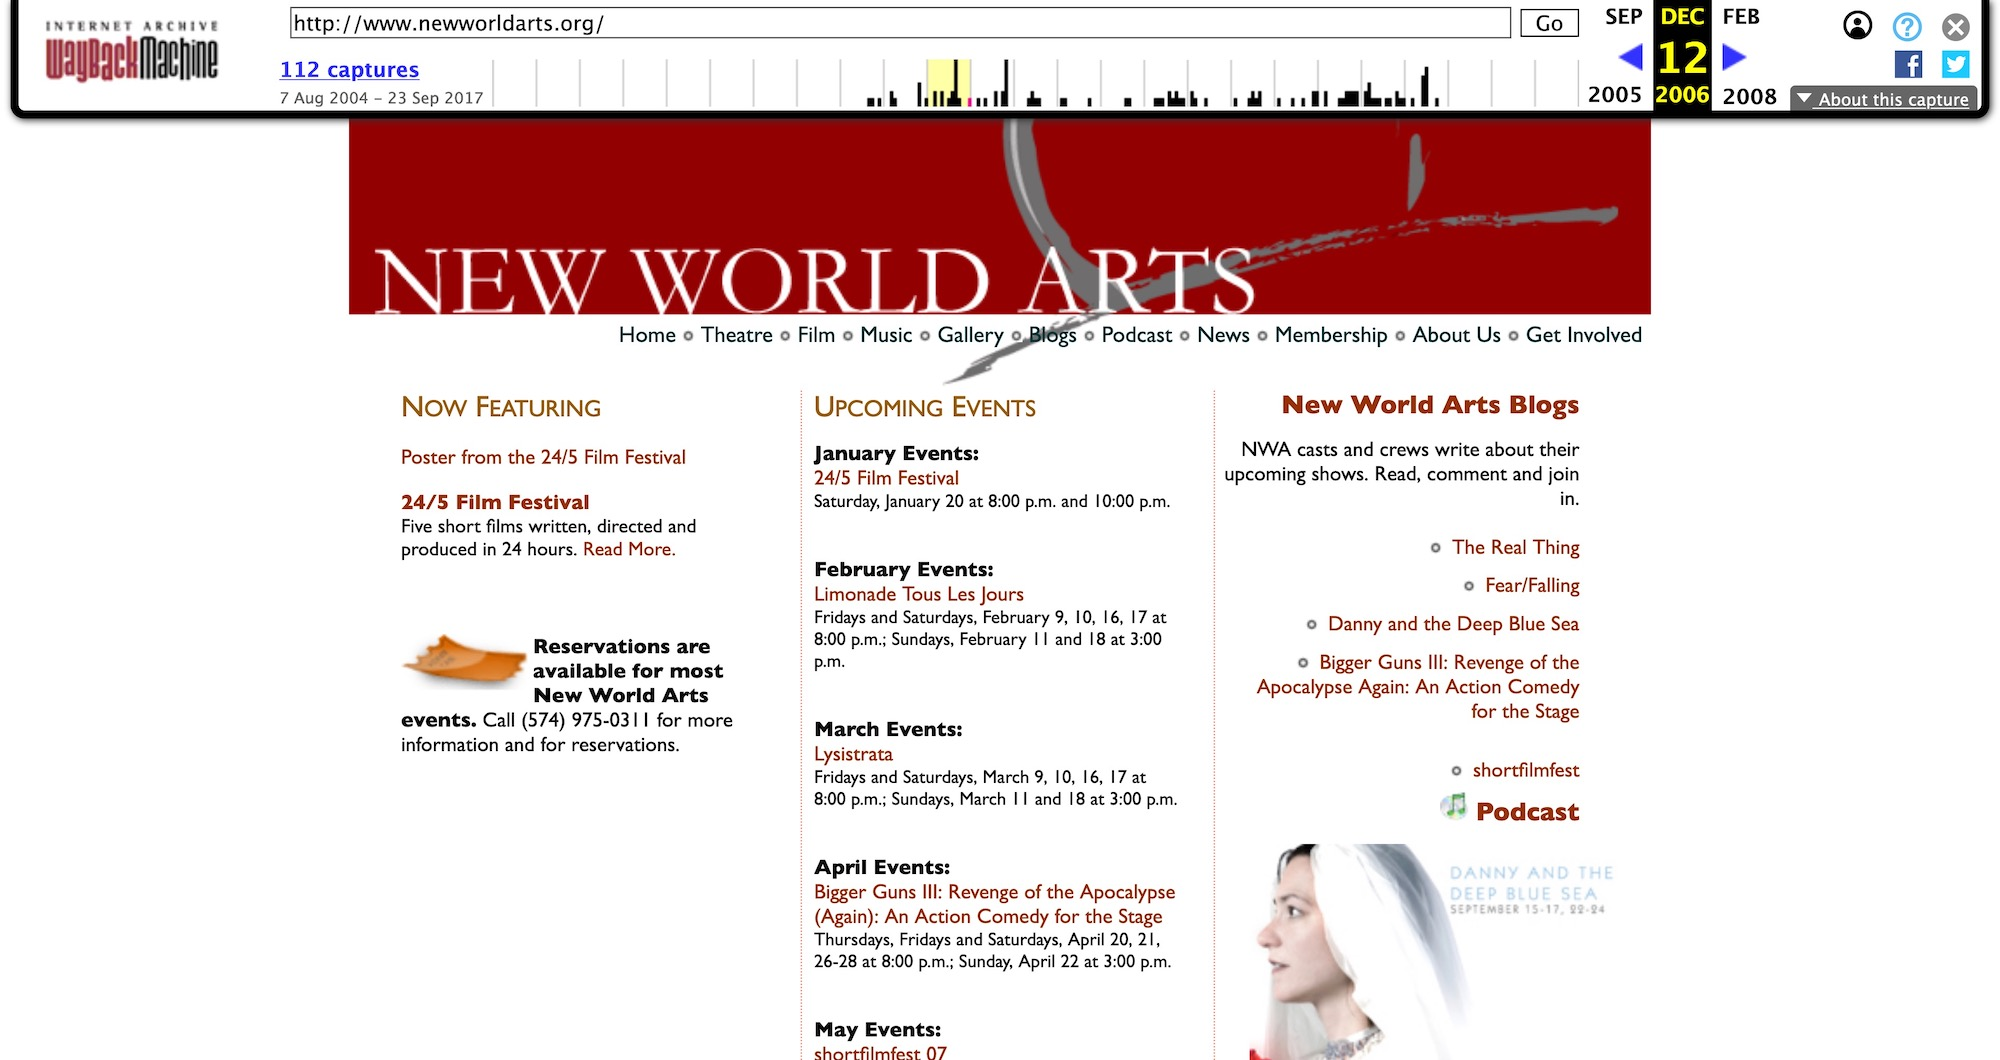 2006 New World Arts website on the wayback machine